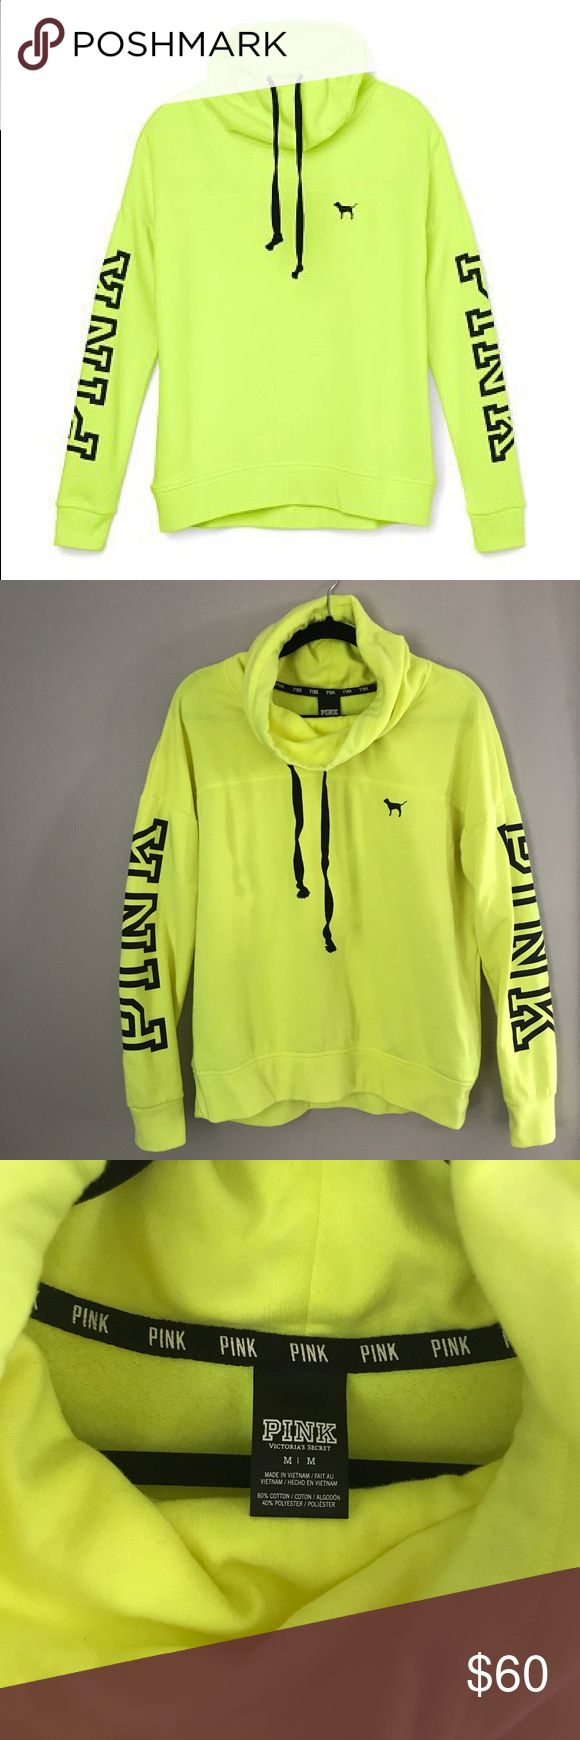 PINK Neon Yellow Cowl Neck Sweatshirt Brand: PINK by Victoria's Secret  Color: Neon Yellow with black detail Size: Medium Condition: worn once, great condition PINK Victoria's Secret Tops Sweatshirts & Hoodies